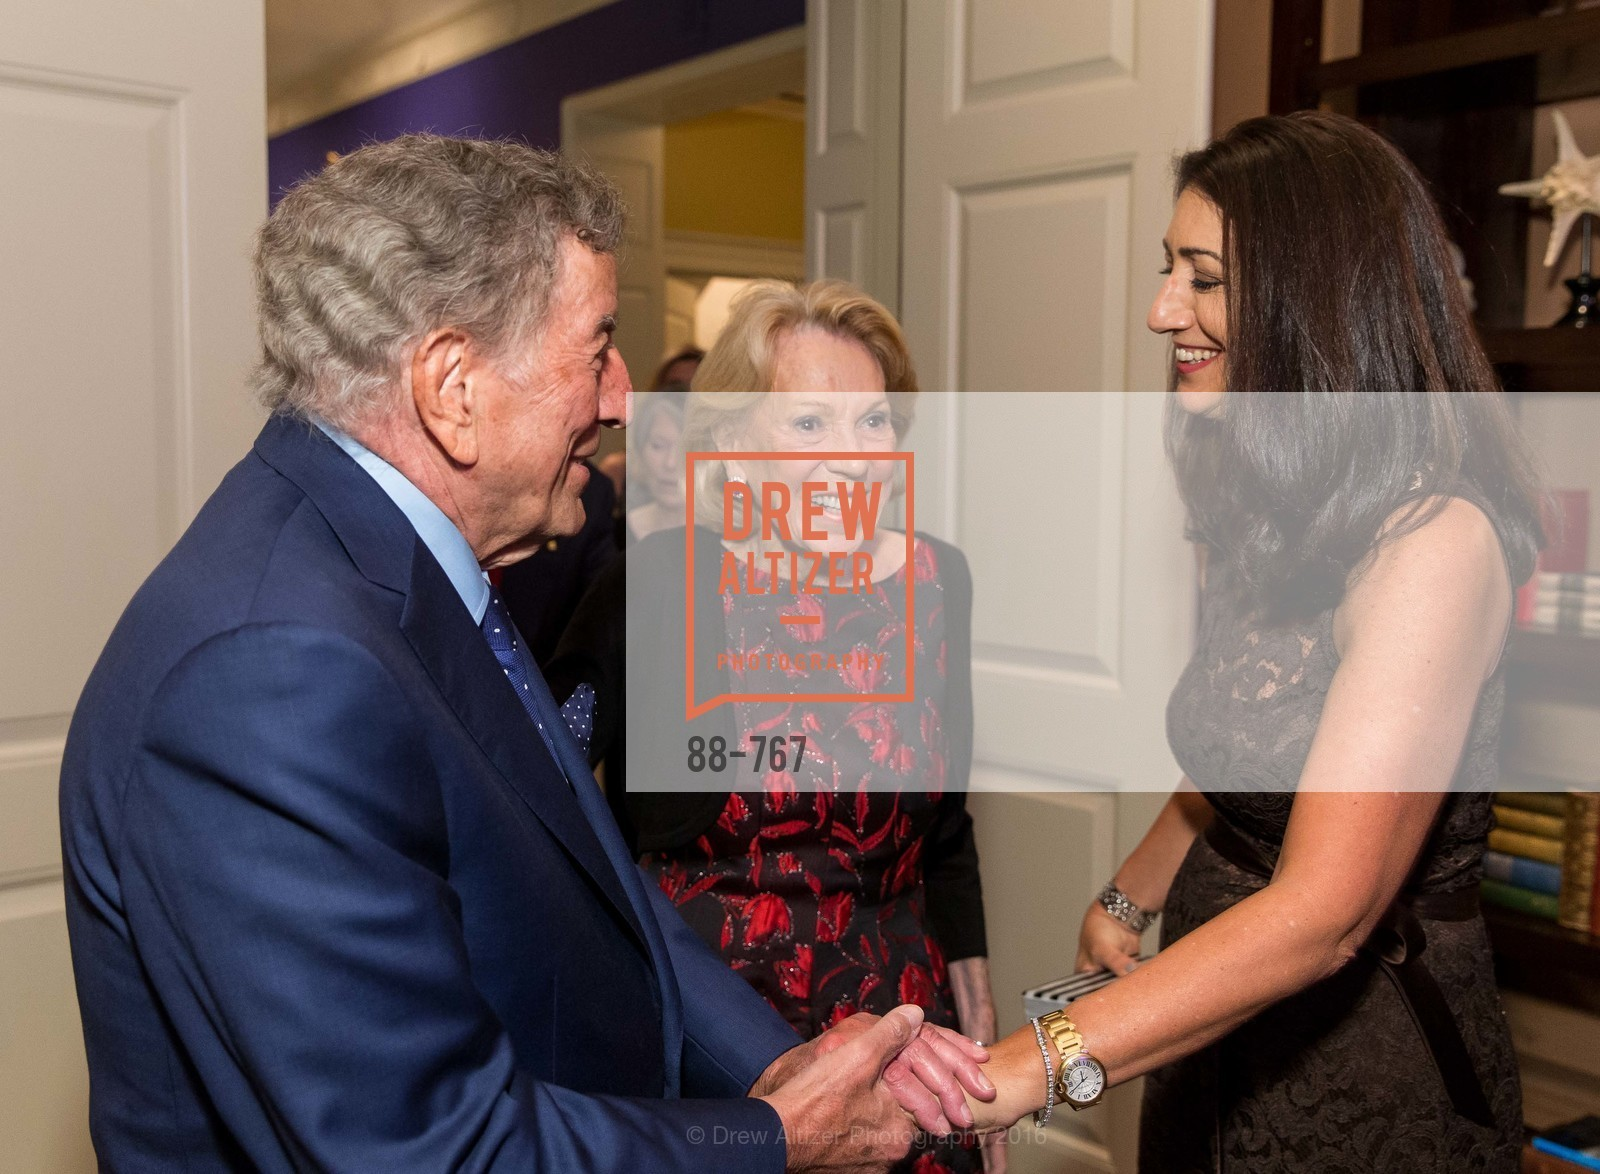 Tony Bennett, Charlotte Shultz, Pam Baer, A Special Reception with Tony Bennett, The Fairmont, San Francisco, The Penthouse Suite, January 26th, 2016,Drew Altizer, Drew Altizer Photography, full-service agency, private events, San Francisco photographer, photographer california